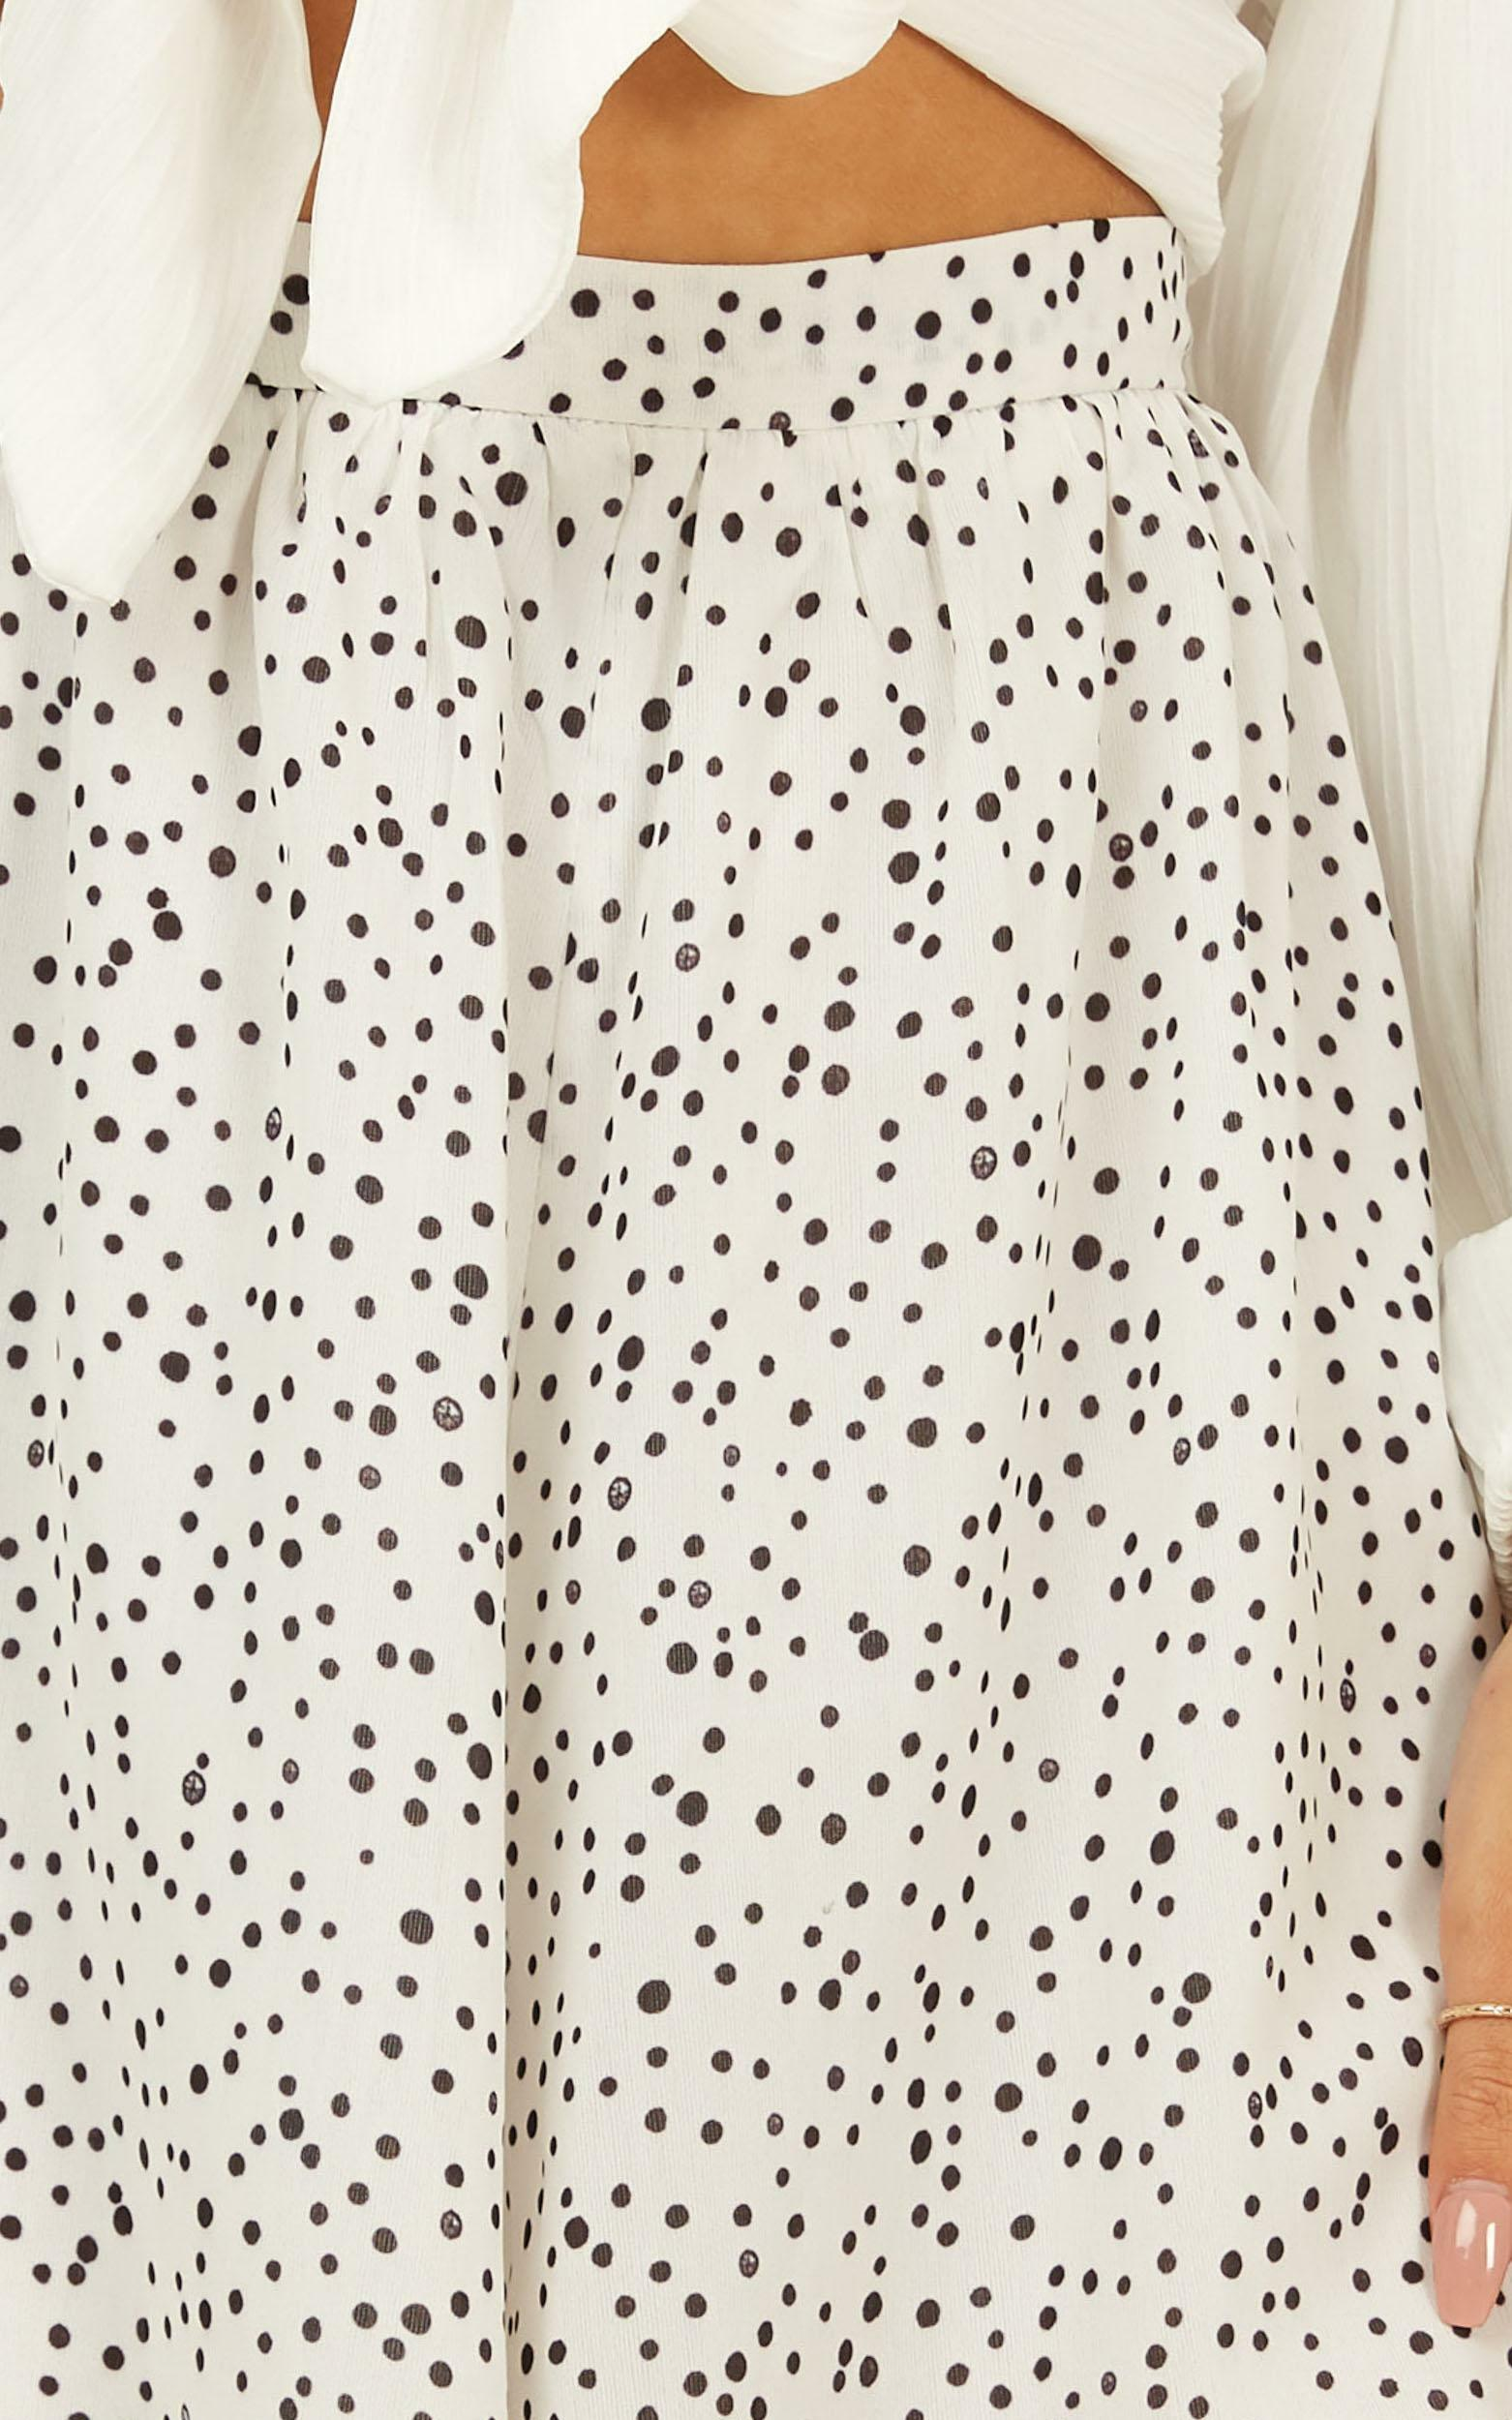 Spot and go shorts in white spot - 12 (L), White, hi-res image number null